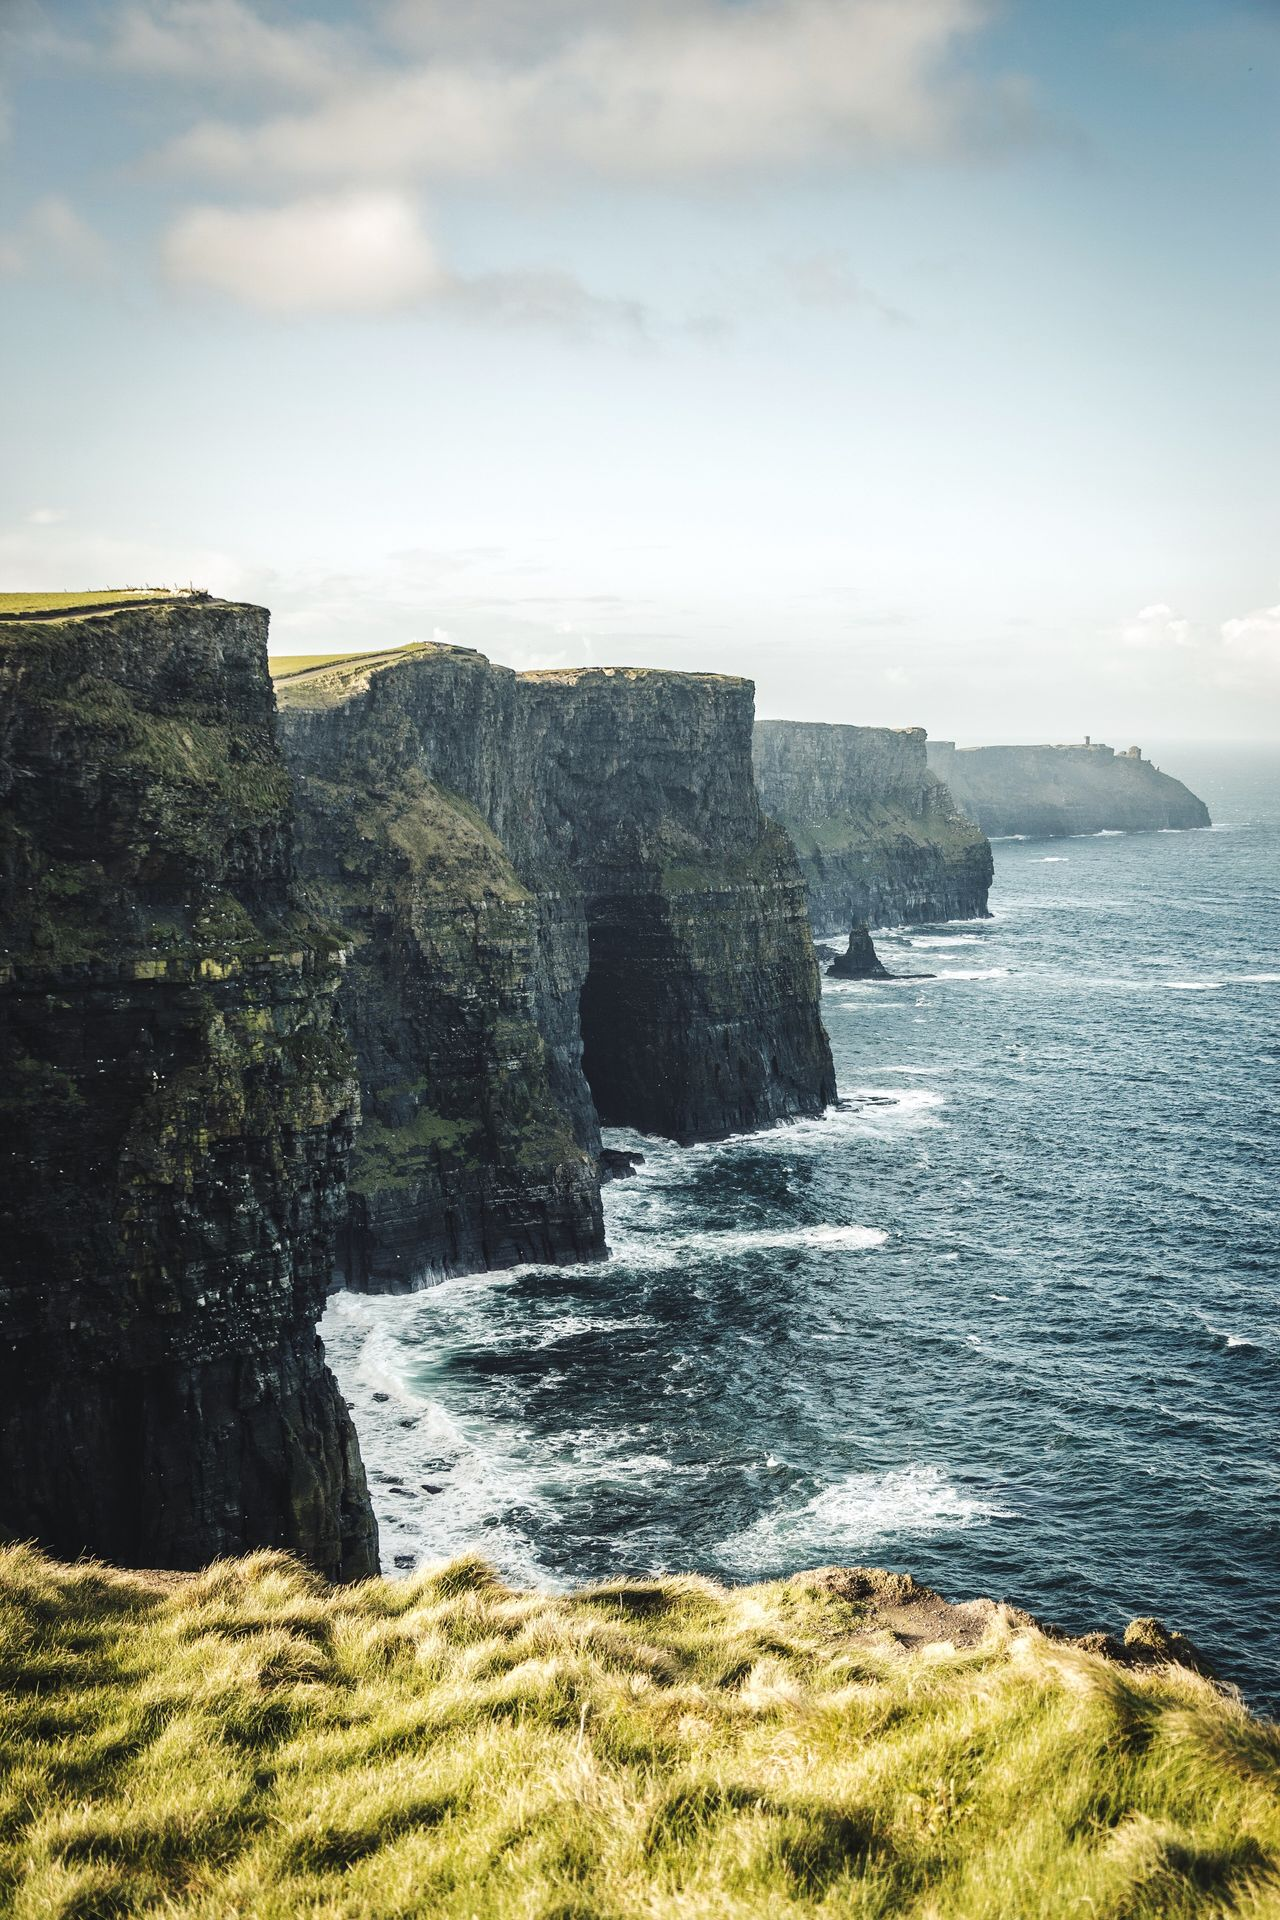 Another good reason for Ireland. Sea Nature Beauty In Nature Scenics Sky No People Rock - Object Water Tranquil Scene Tranquility Outdoors Day Horizon Over Water Cliff Ireland